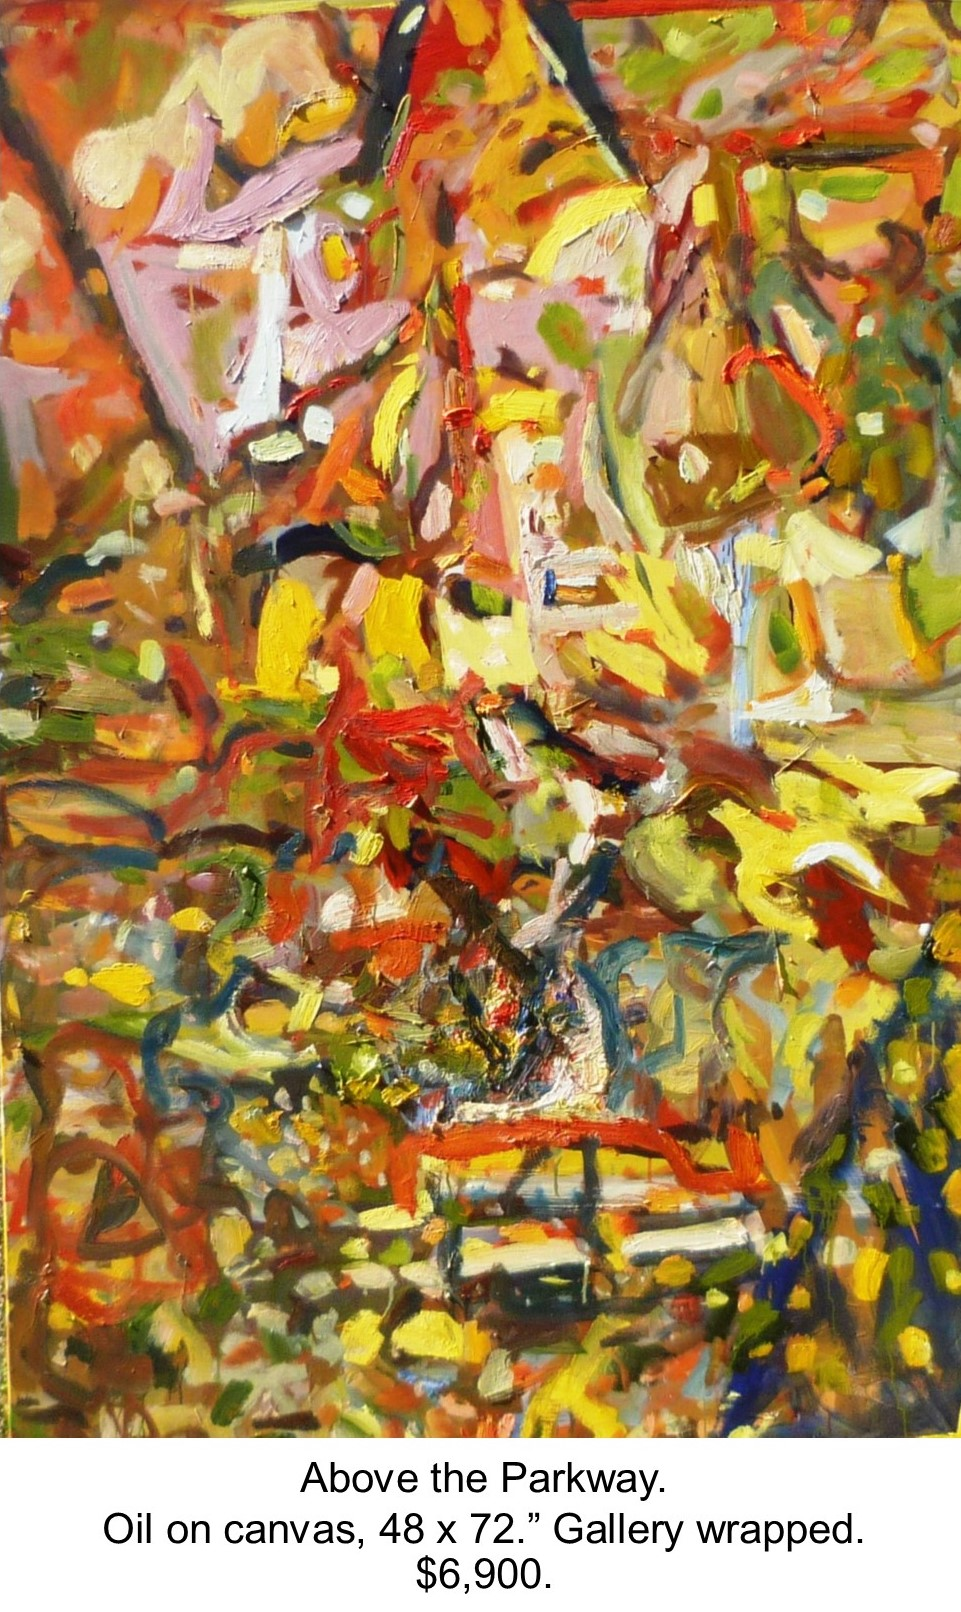 Fred Wise, Above the Parkway. Oil on canvas, 72 x 48, 2016, gallery.jpg